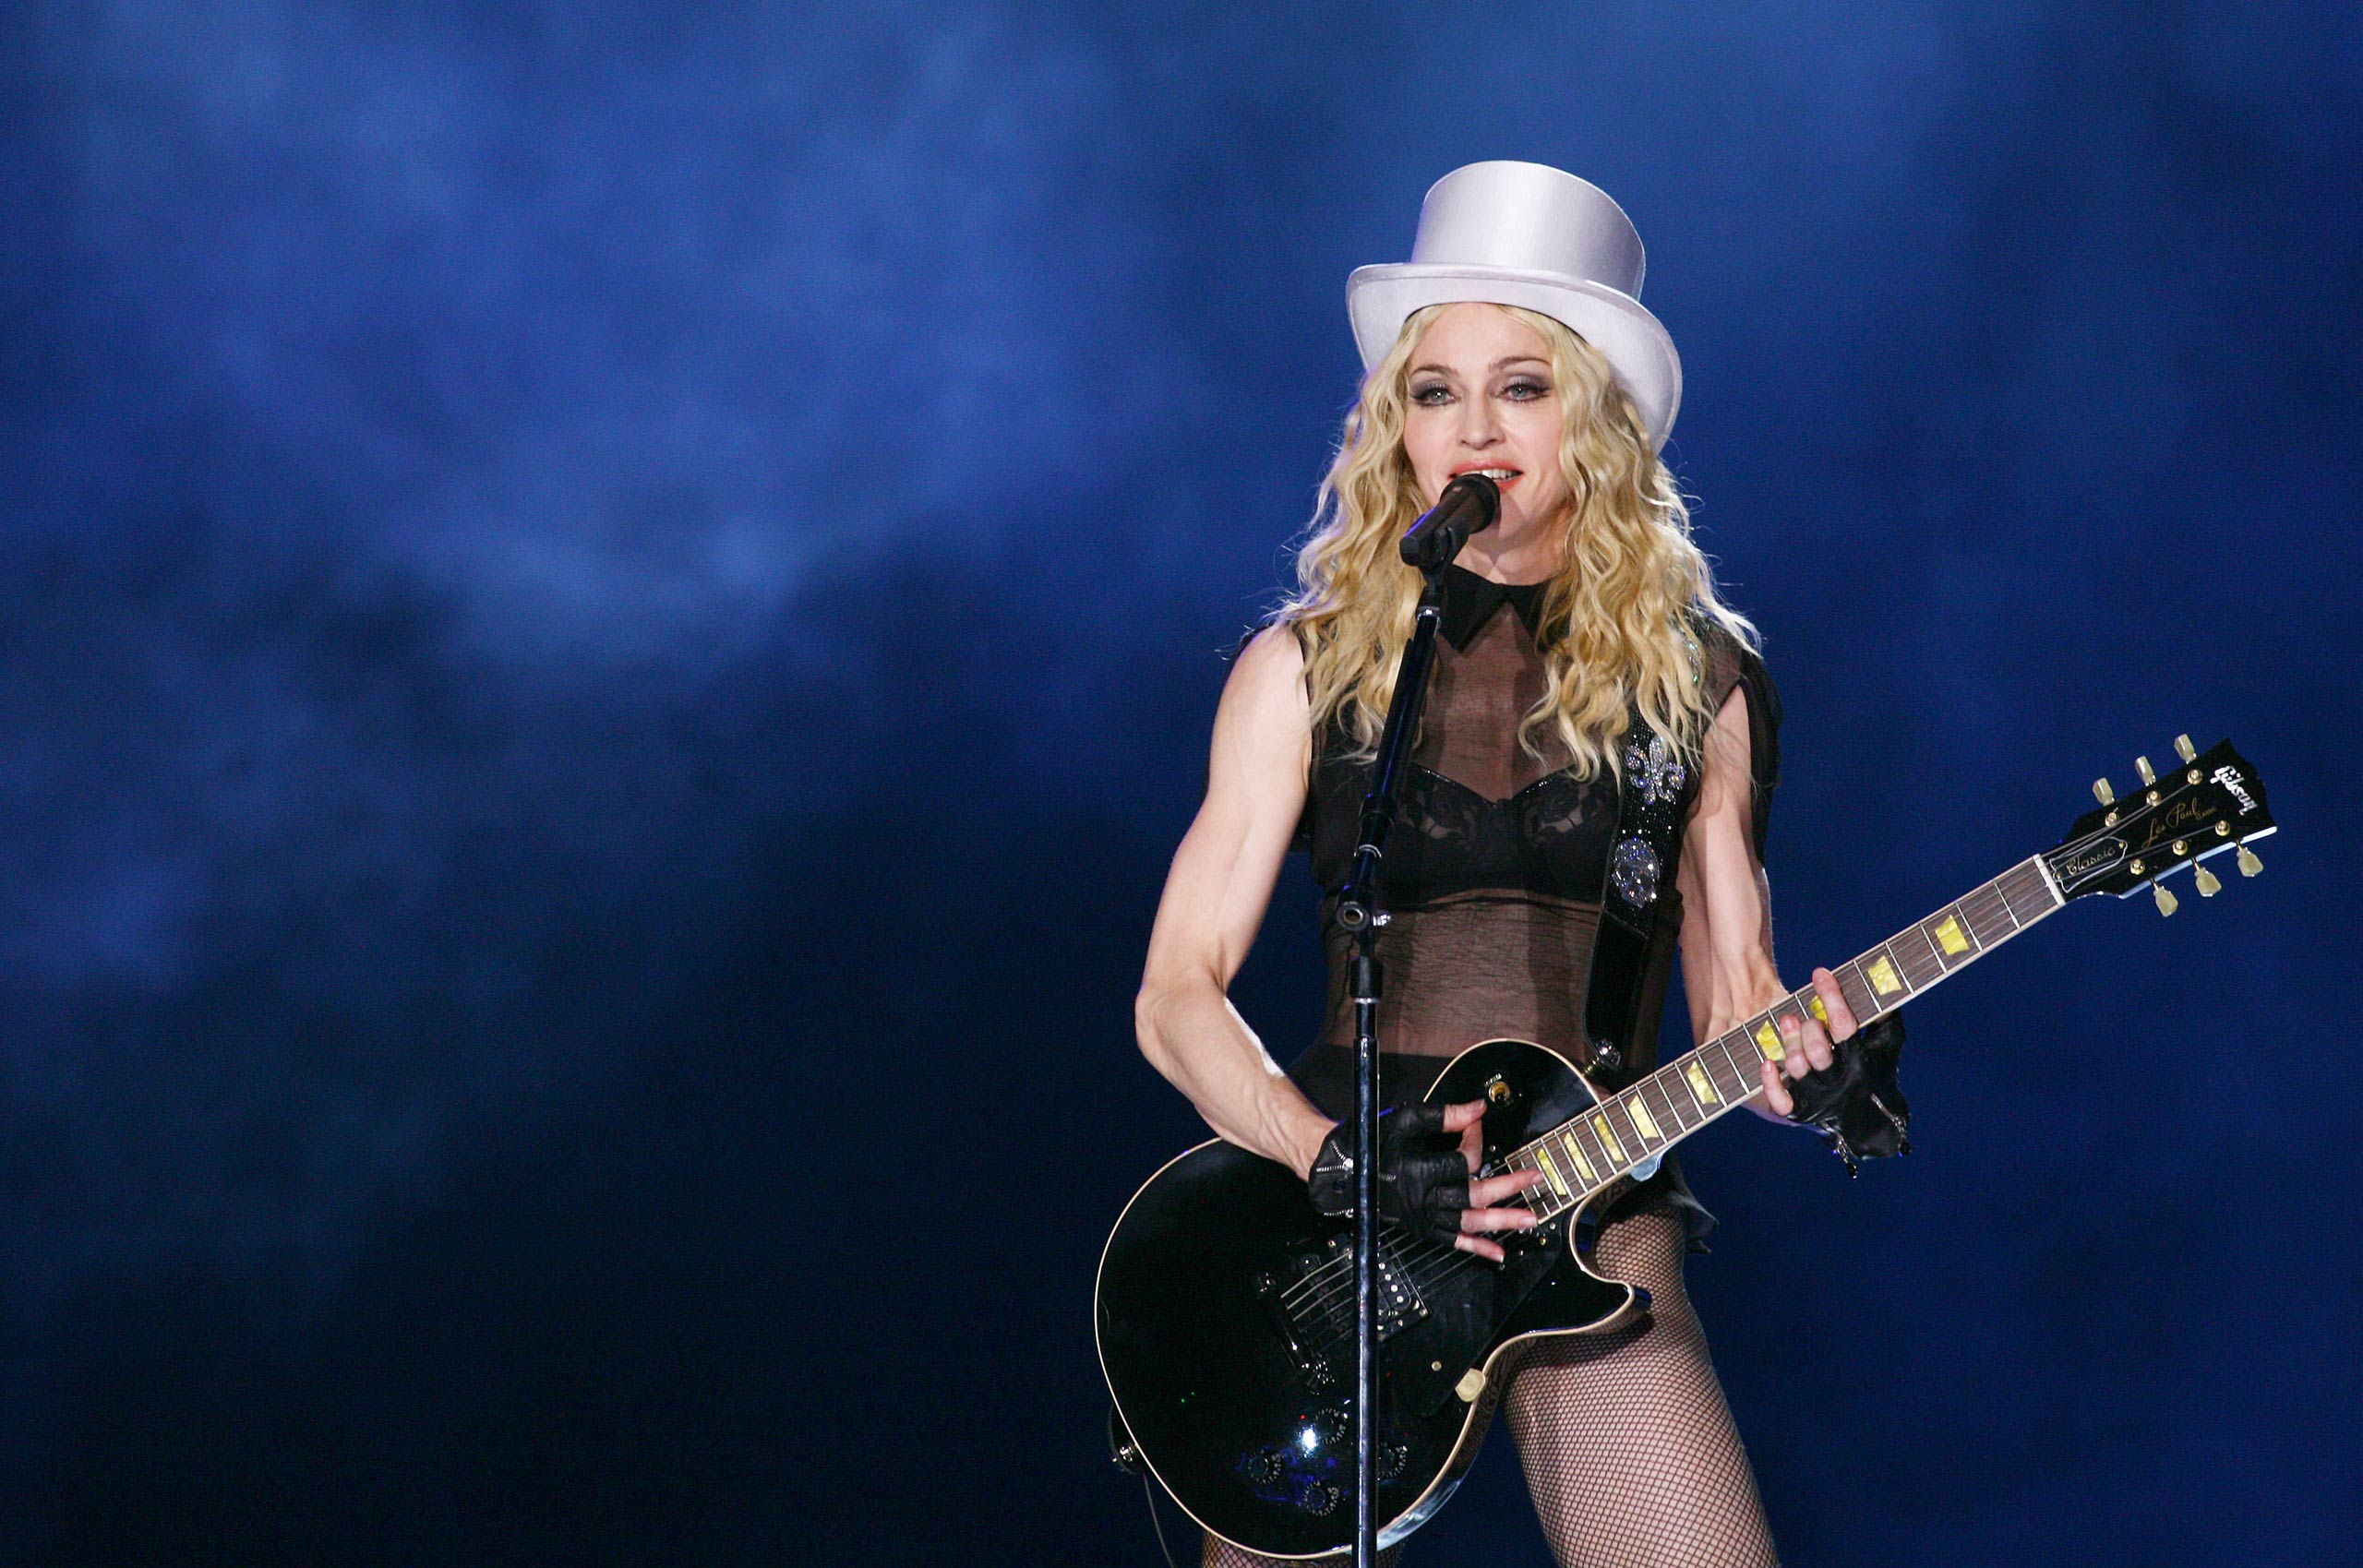 Madonna performs at Olympic Stadium during a concert of the 'Sticky and Sweet' world tour in Rome, Italy in 2008.